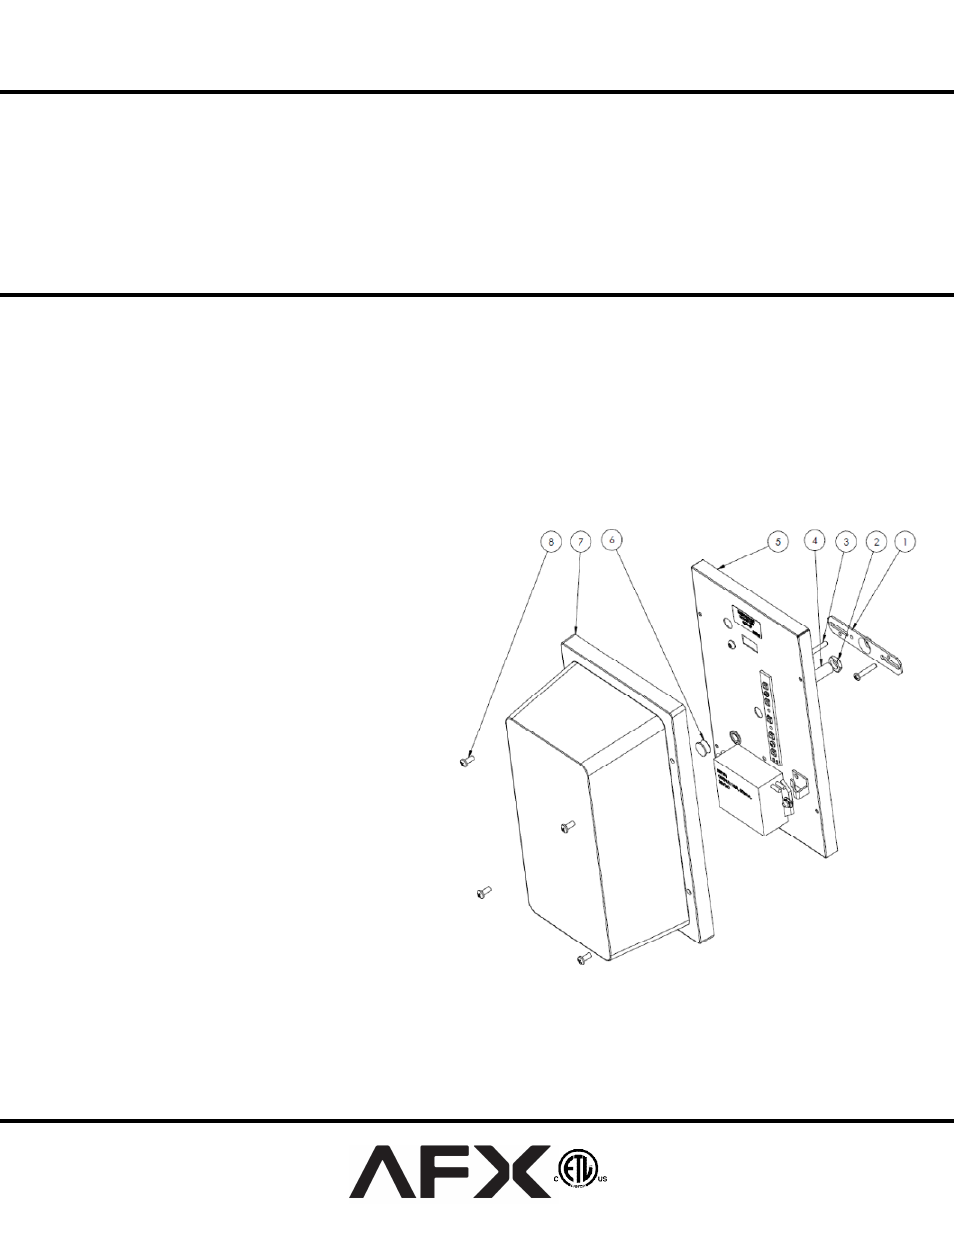 Afx tpuw70050lwh user manual 1 page publicscrutiny